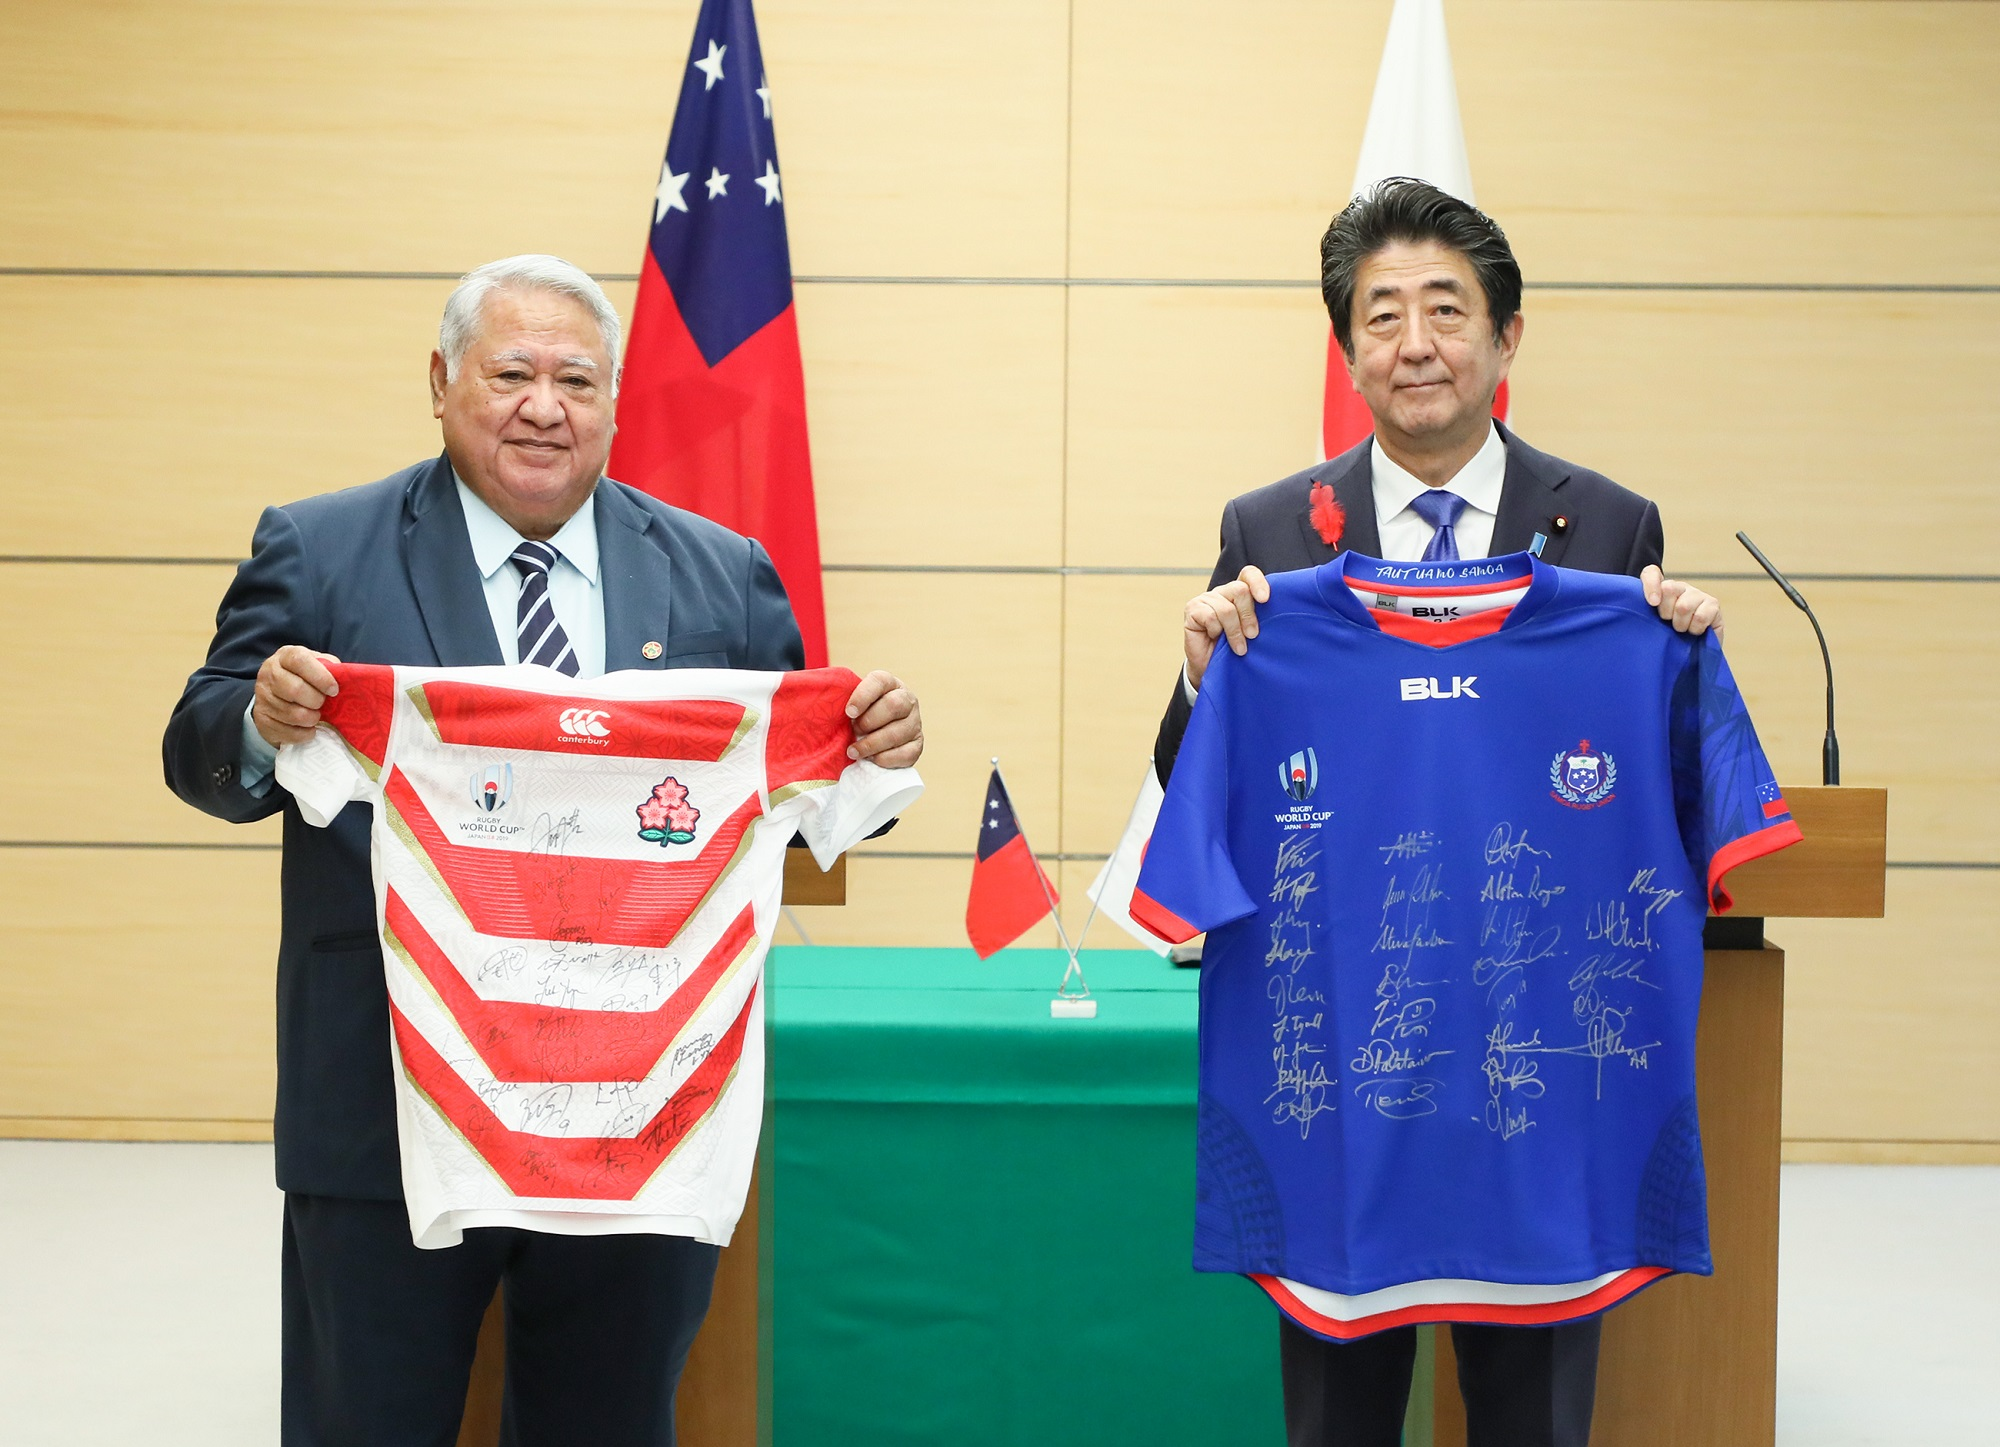 Photograph of the leaders exchanging uniforms of their countries' national rugby teams (3)